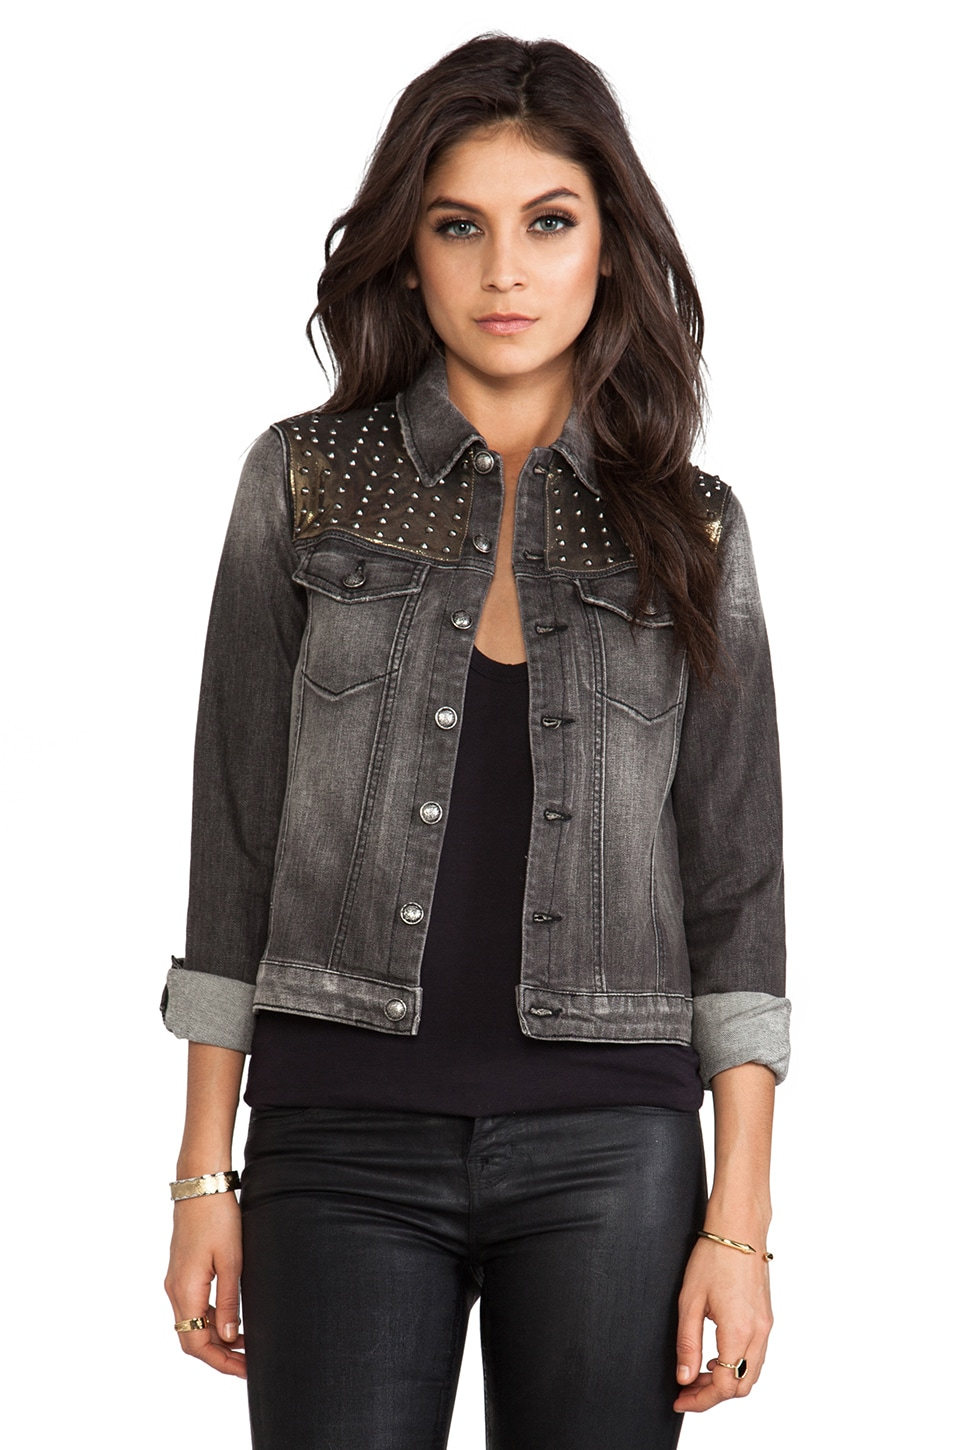 Frankie B. Jeans Armanda Denim Jacket in Dirty Black